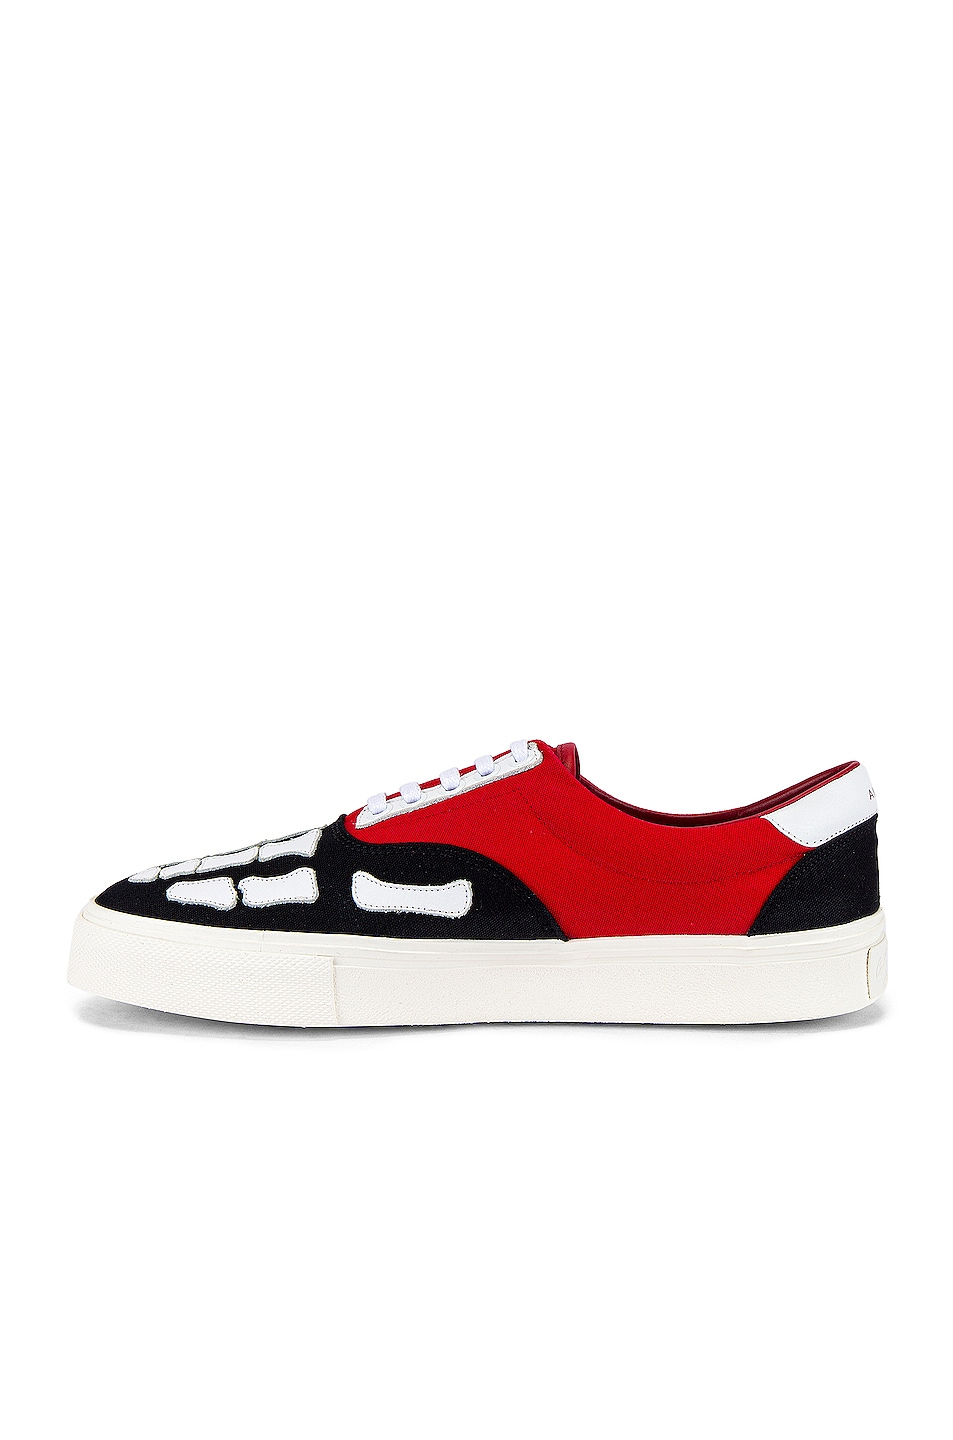 Image 5 of Amiri Skel Toe Lace Up Sneaker in Black & Red & White